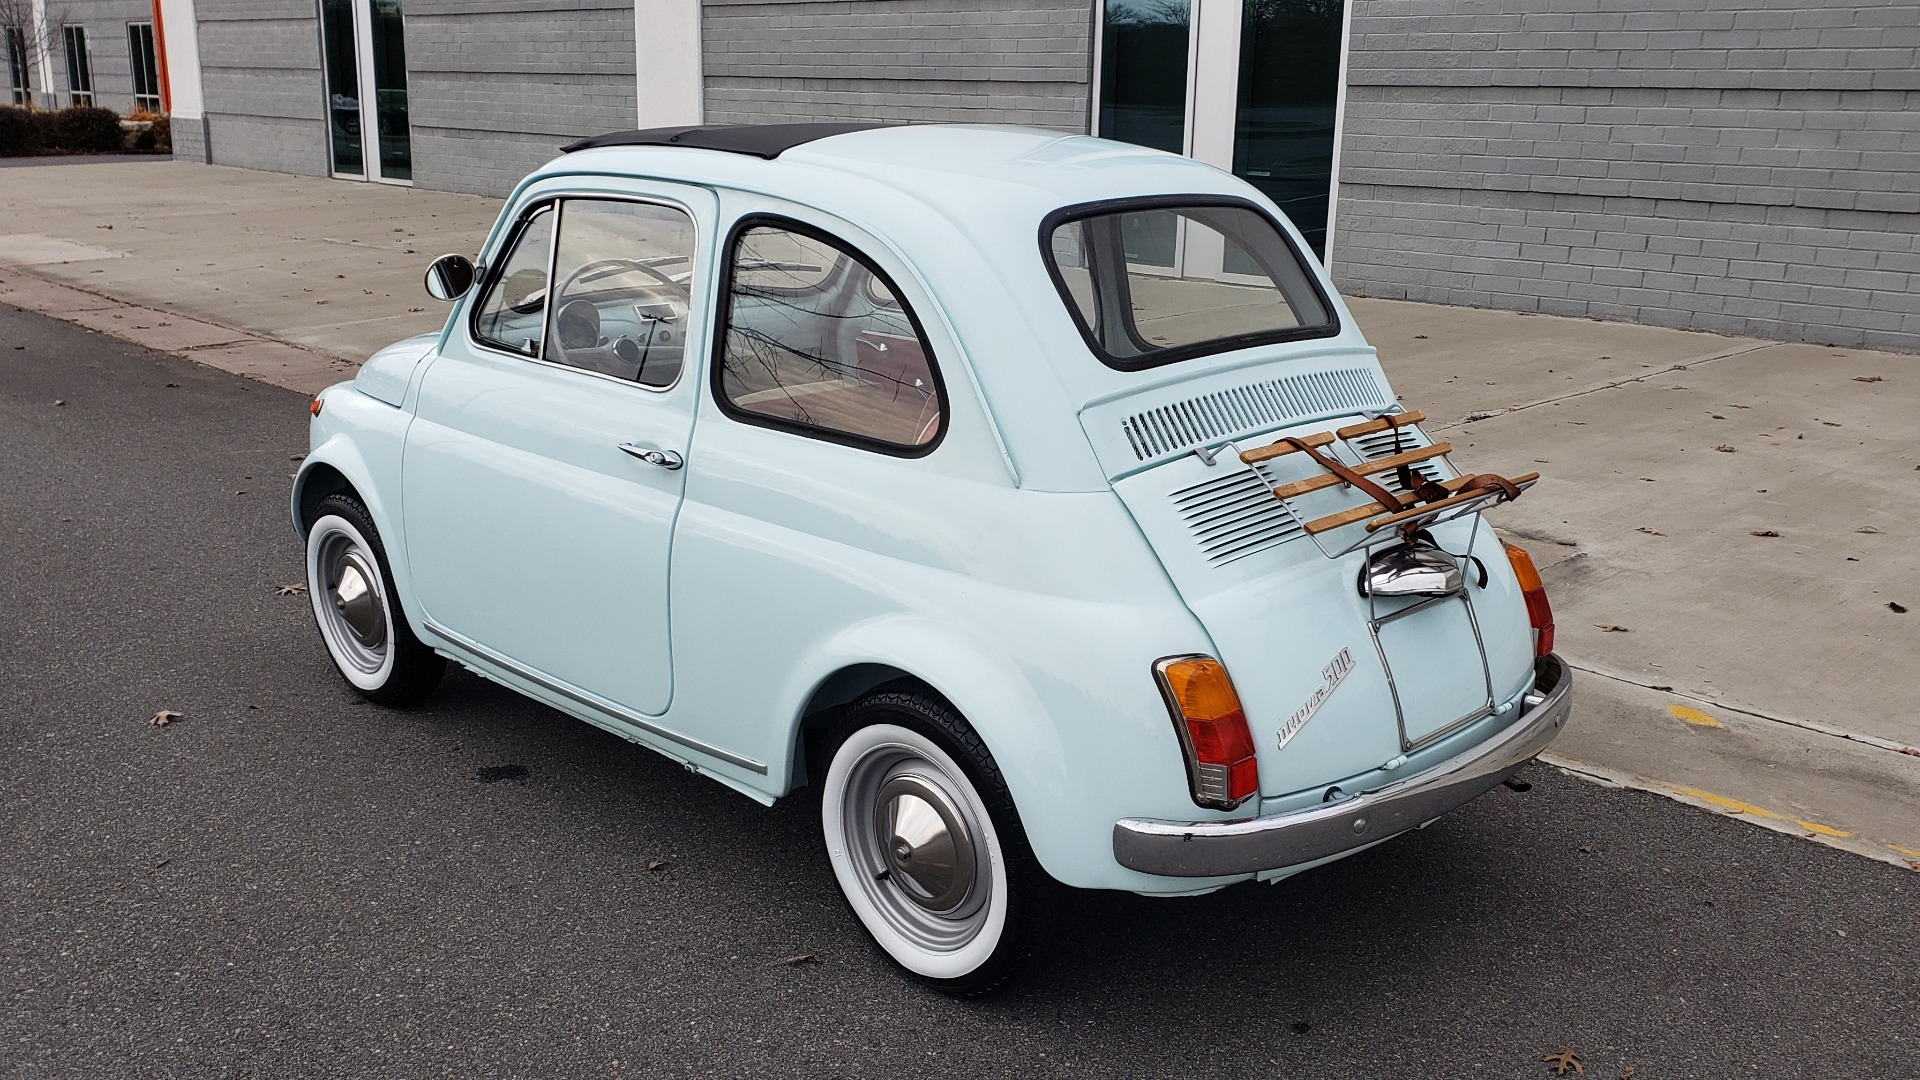 Used 1968 FIAT 500 NUOVA / SOFT-TOP / LUGGAGE RACK / RESTORED, LIKE NEW for sale $21,900 at Formula Imports in Charlotte NC 28227 4